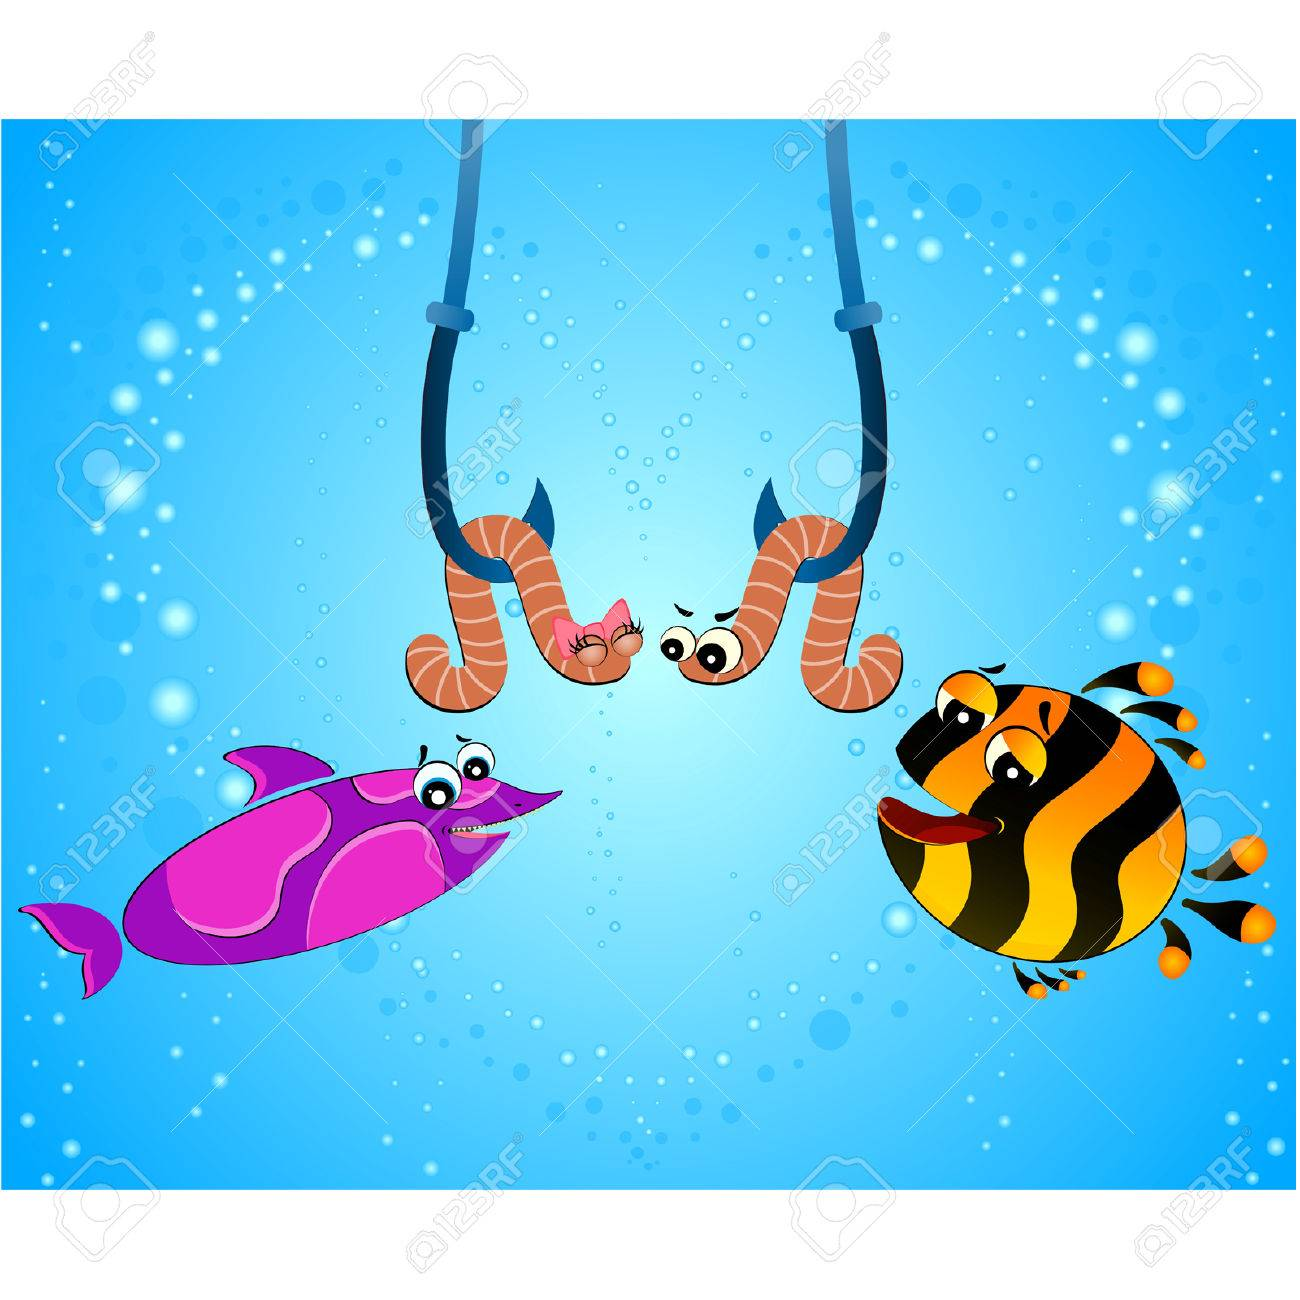 Fish Eating Fish Cartoon Big Cartoon Funny Fish Eats a